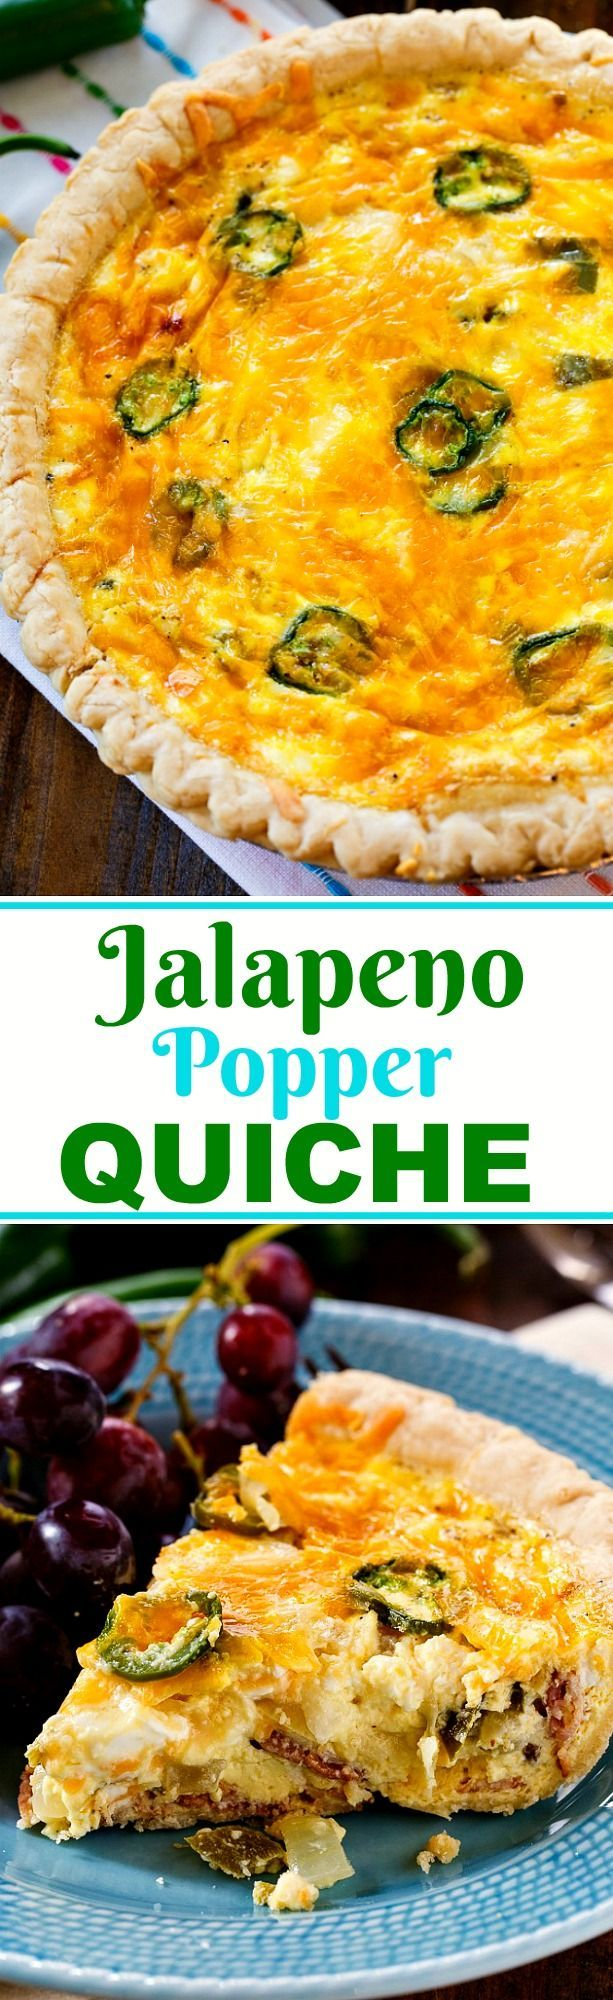 Jalapeno Popper Quiche | Recipe | Jalapeno poppers and Quiches